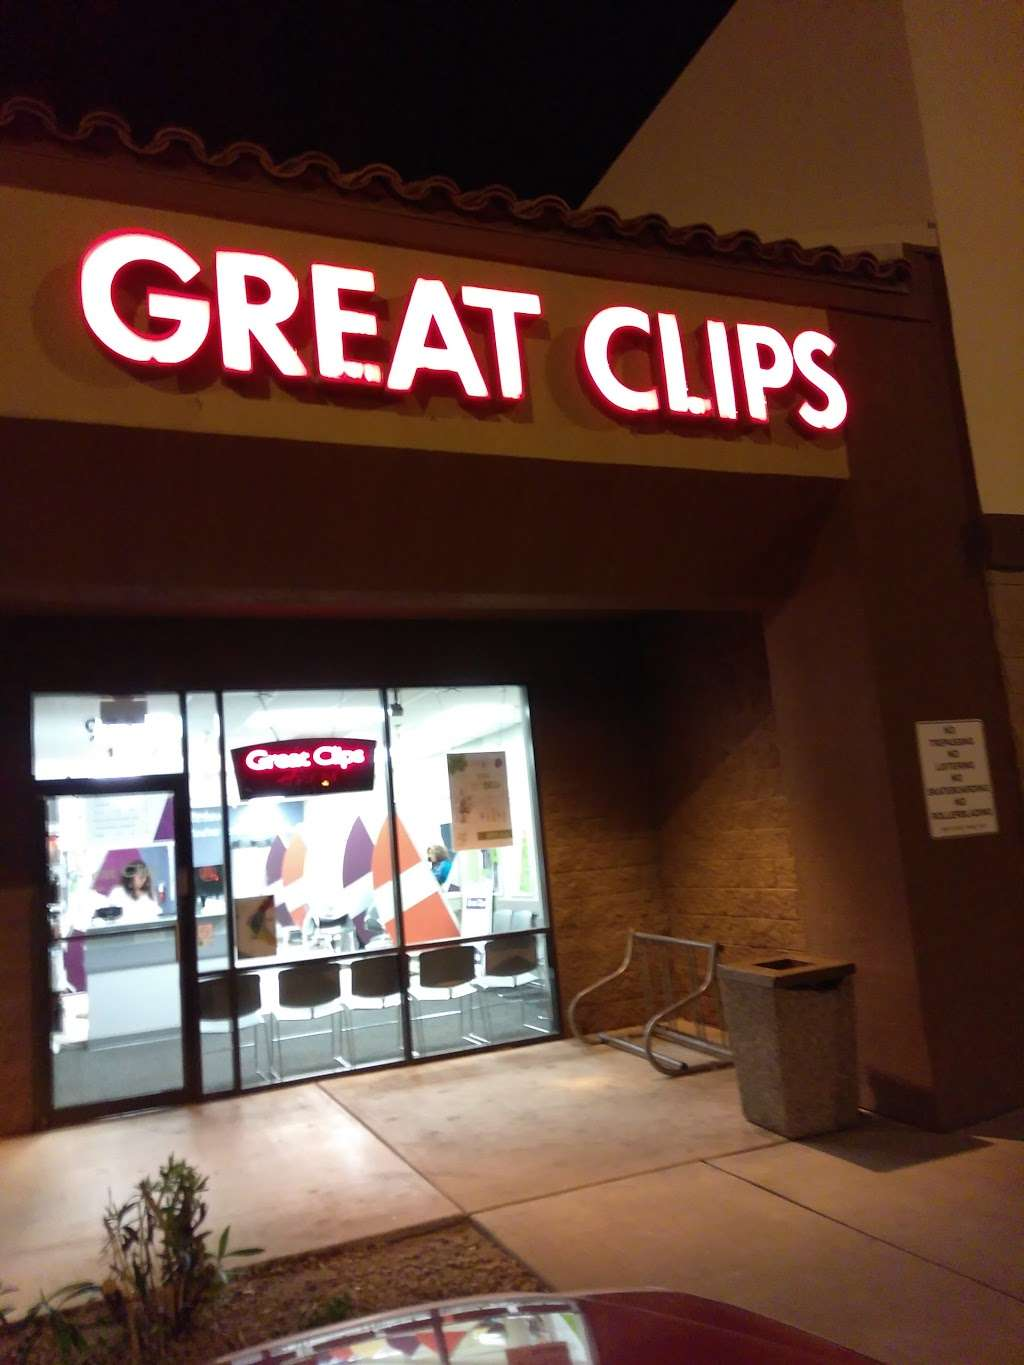 Great Clips - hair care  | Photo 4 of 6 | Address: 973 W Elliot Rd #1, Chandler, AZ 85225, USA | Phone: (480) 899-8640